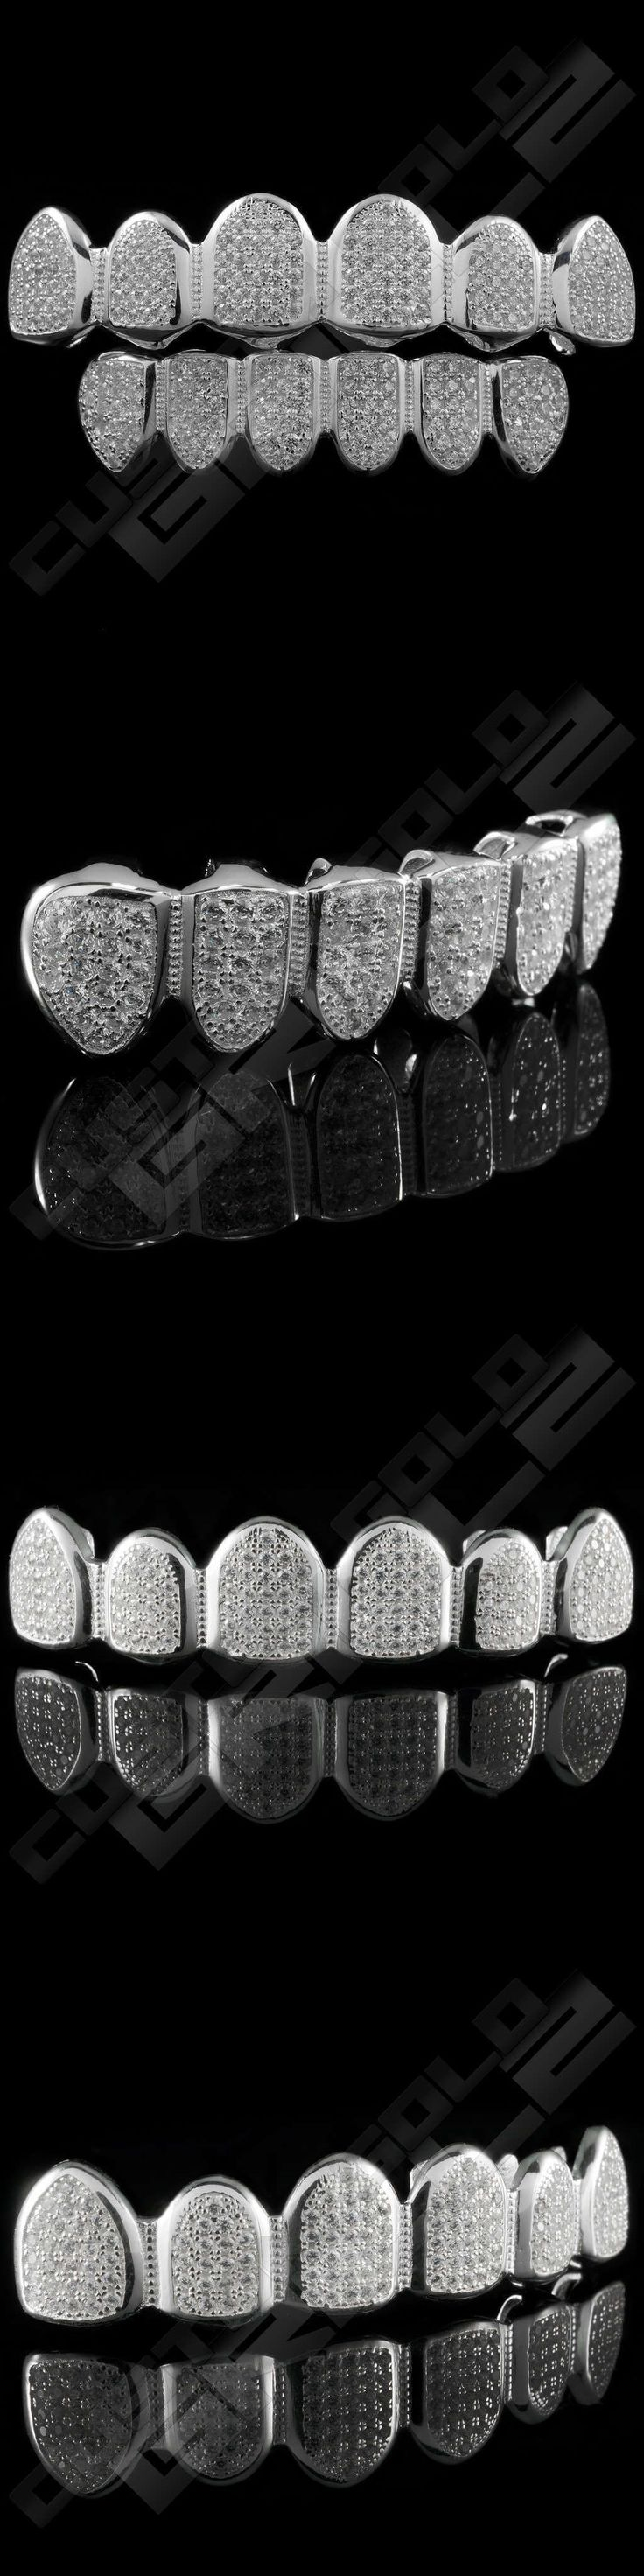 Grillz Dental Grills 152808: Bling .925 Sterling Silver Teeth Grillz Custom Grill Mouth Top Bottom Diamond Nw BUY IT NOW ONLY: $88.99